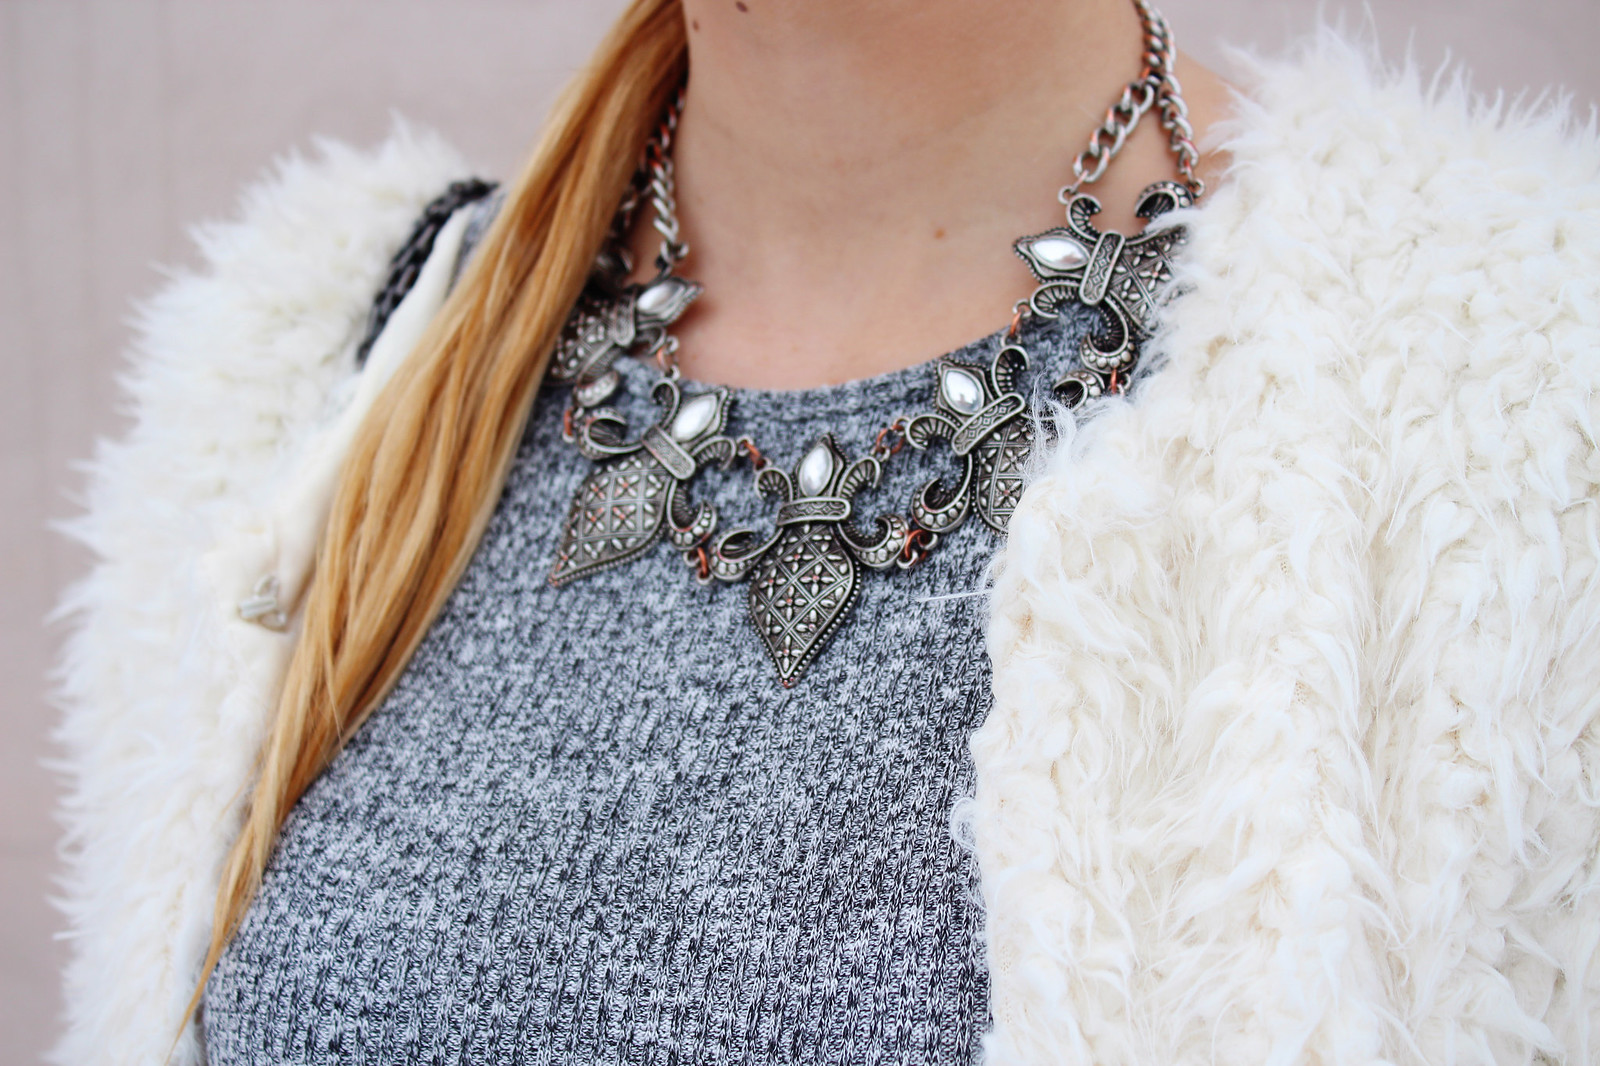 Medieval style necklace